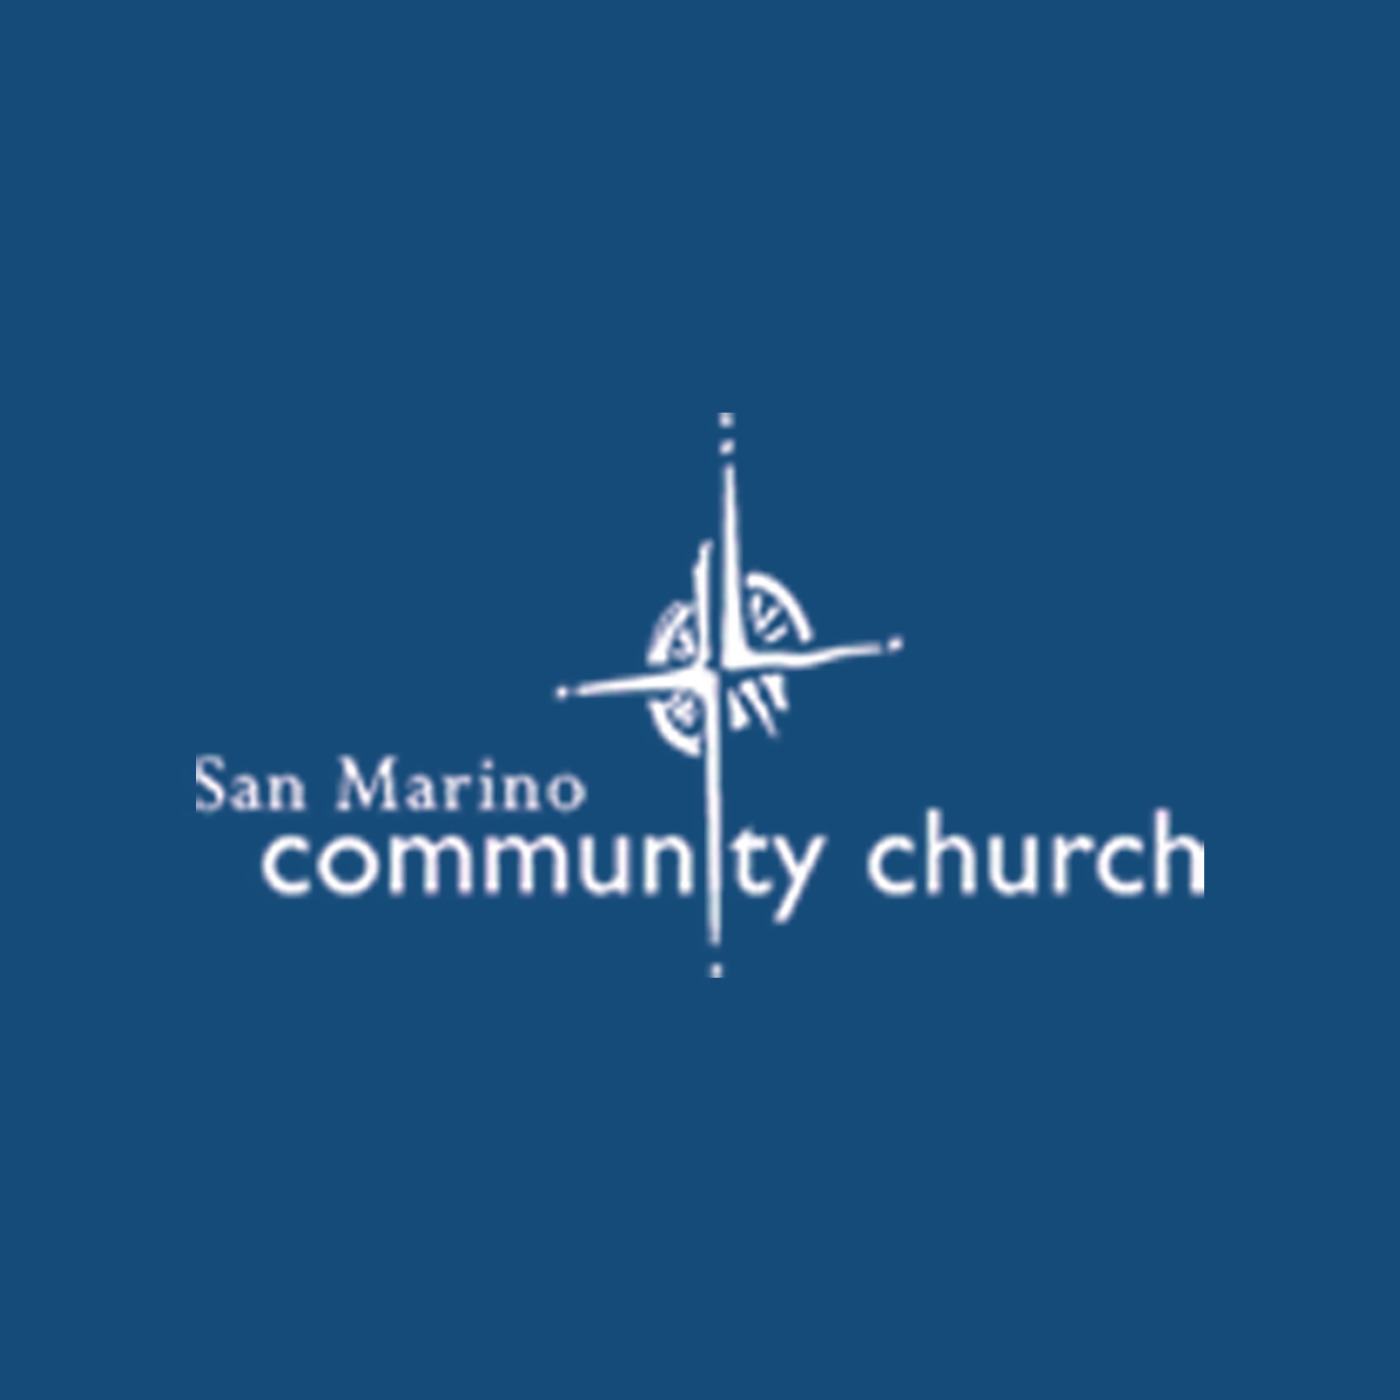 San Marino Community Church